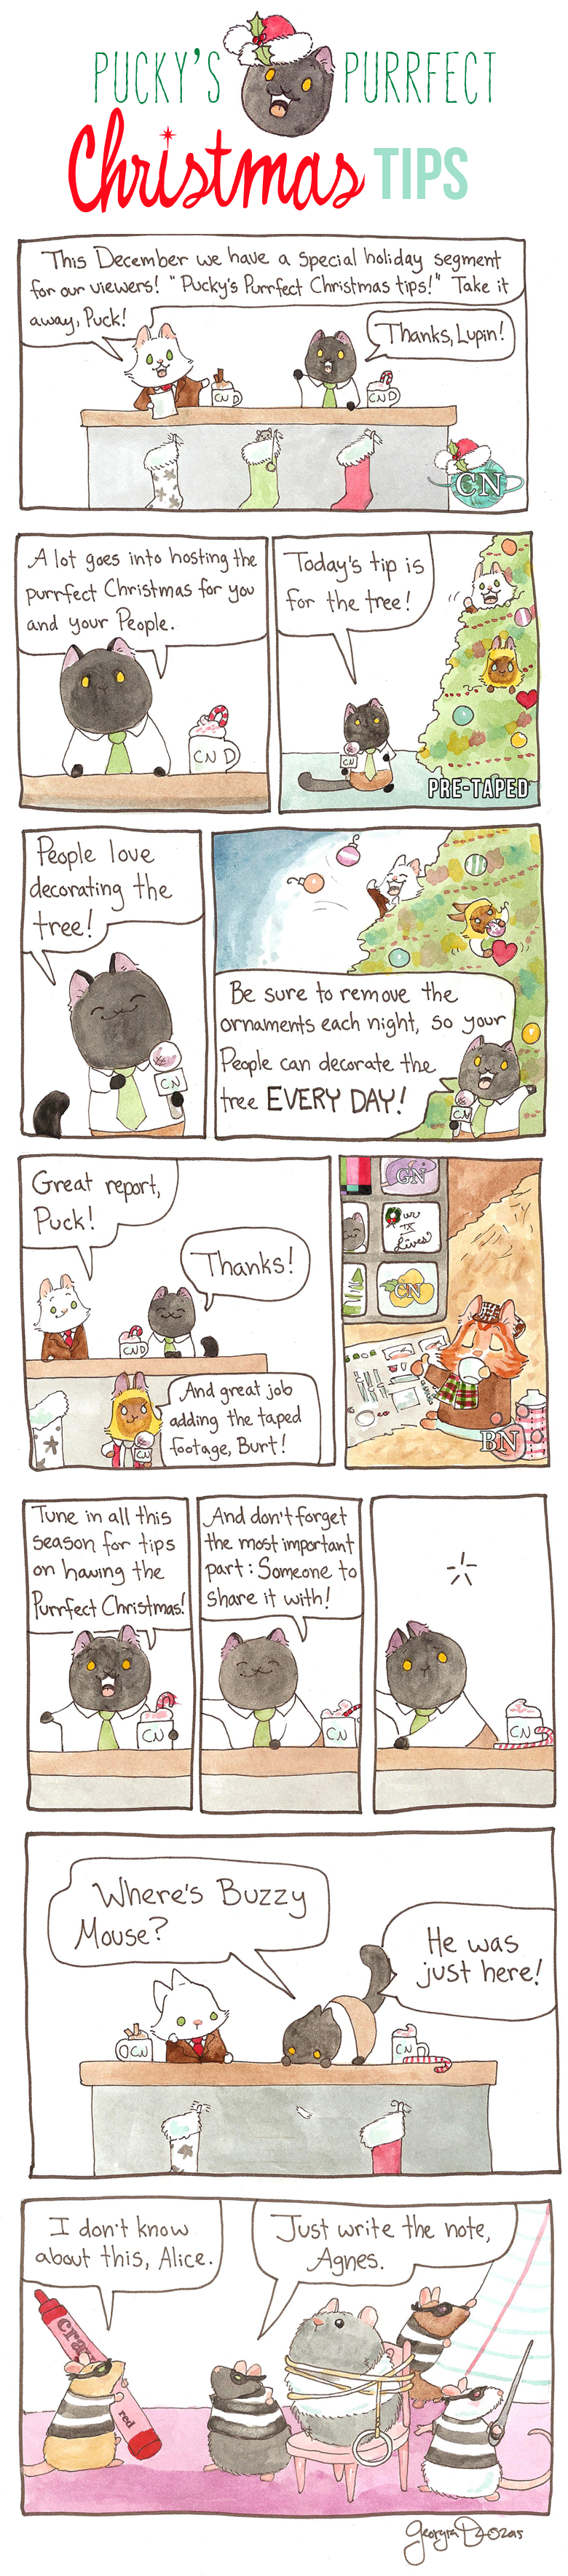 Pucky's Purrfect Christmas Tips Part One